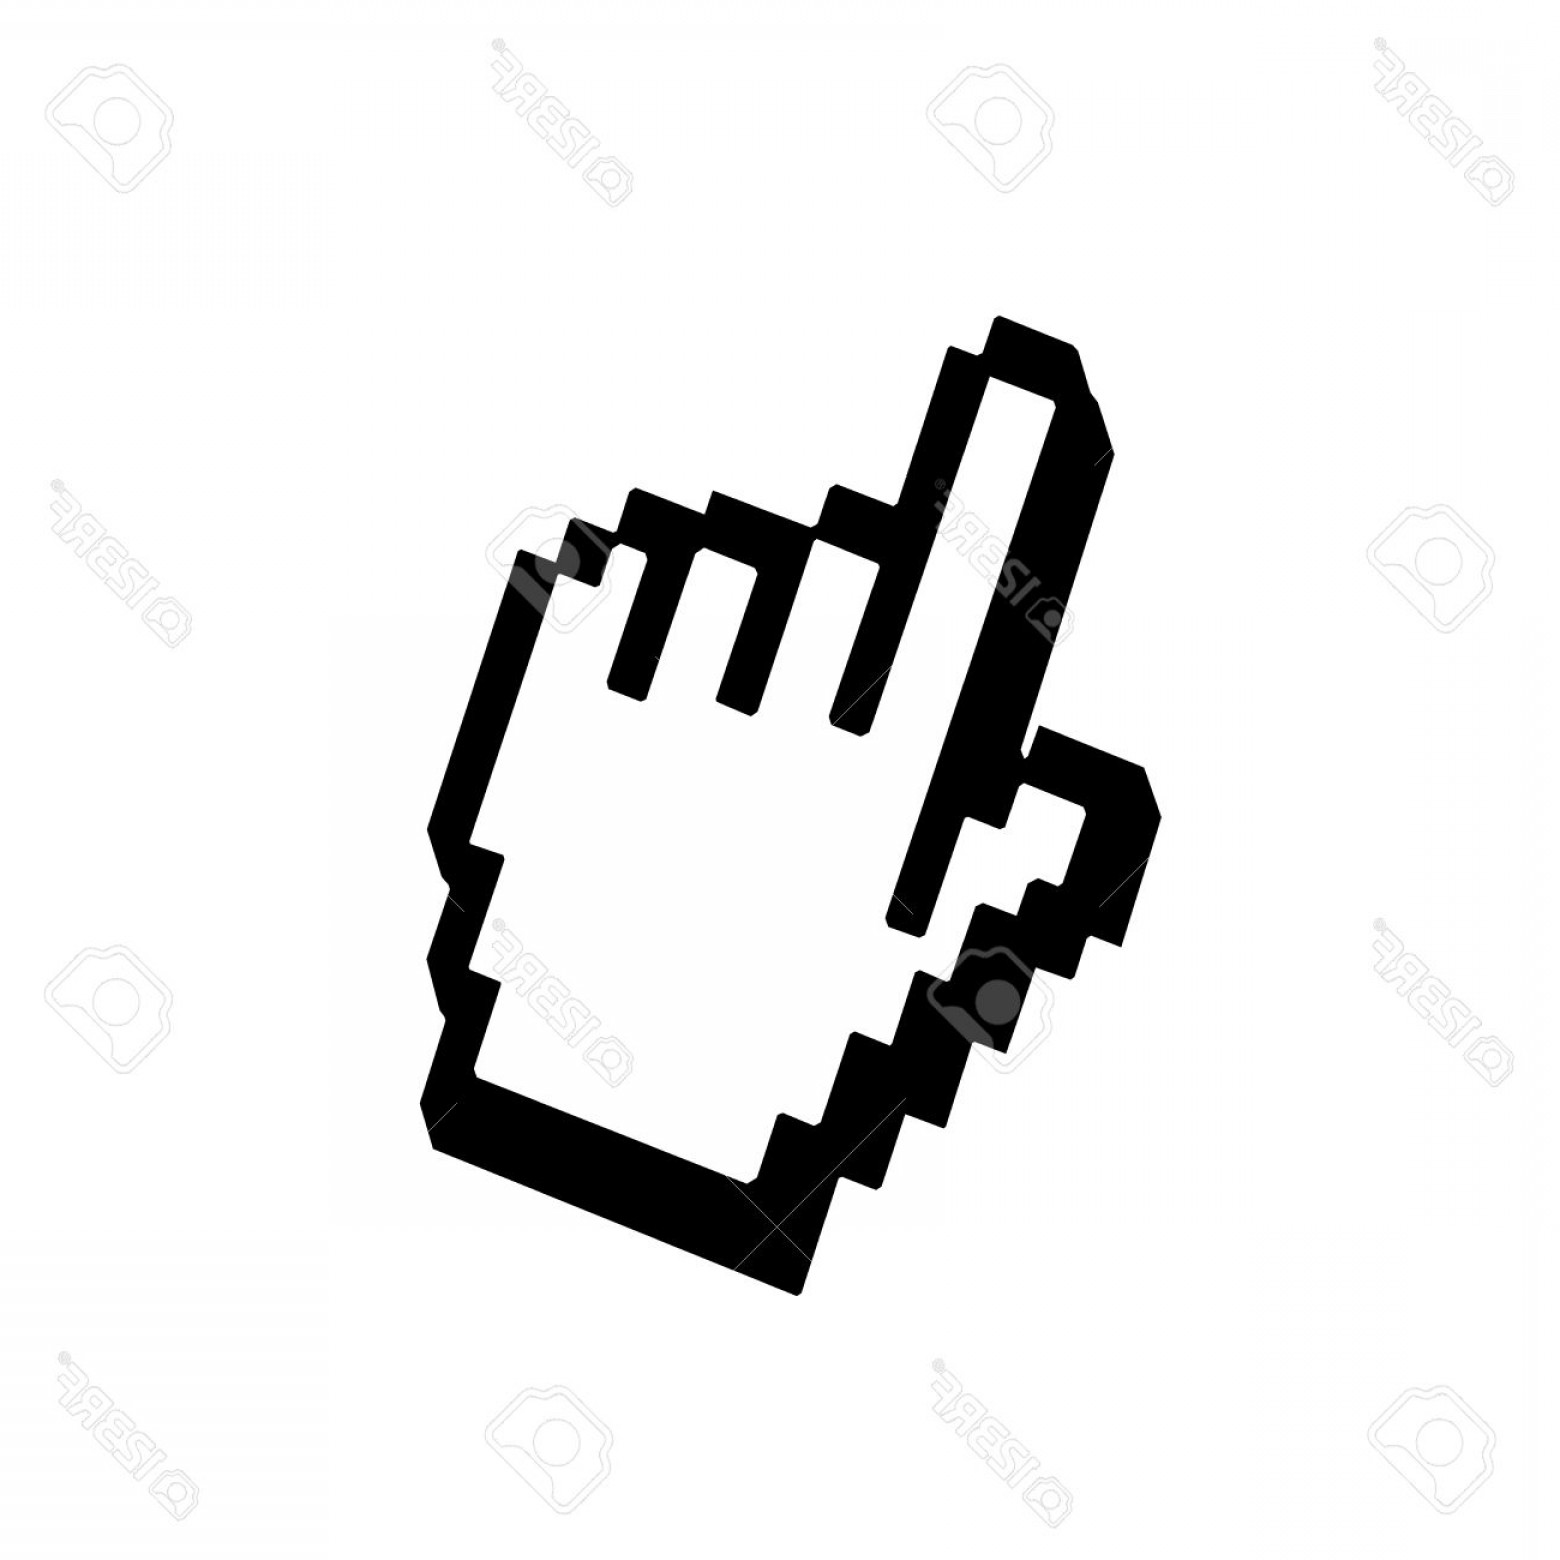 Computer Pointer Vector: Photostock Vector Hand Pointer Sign Cursor Mouse Web Icon Pixelated Click Button Black Element Isolated On White Backg